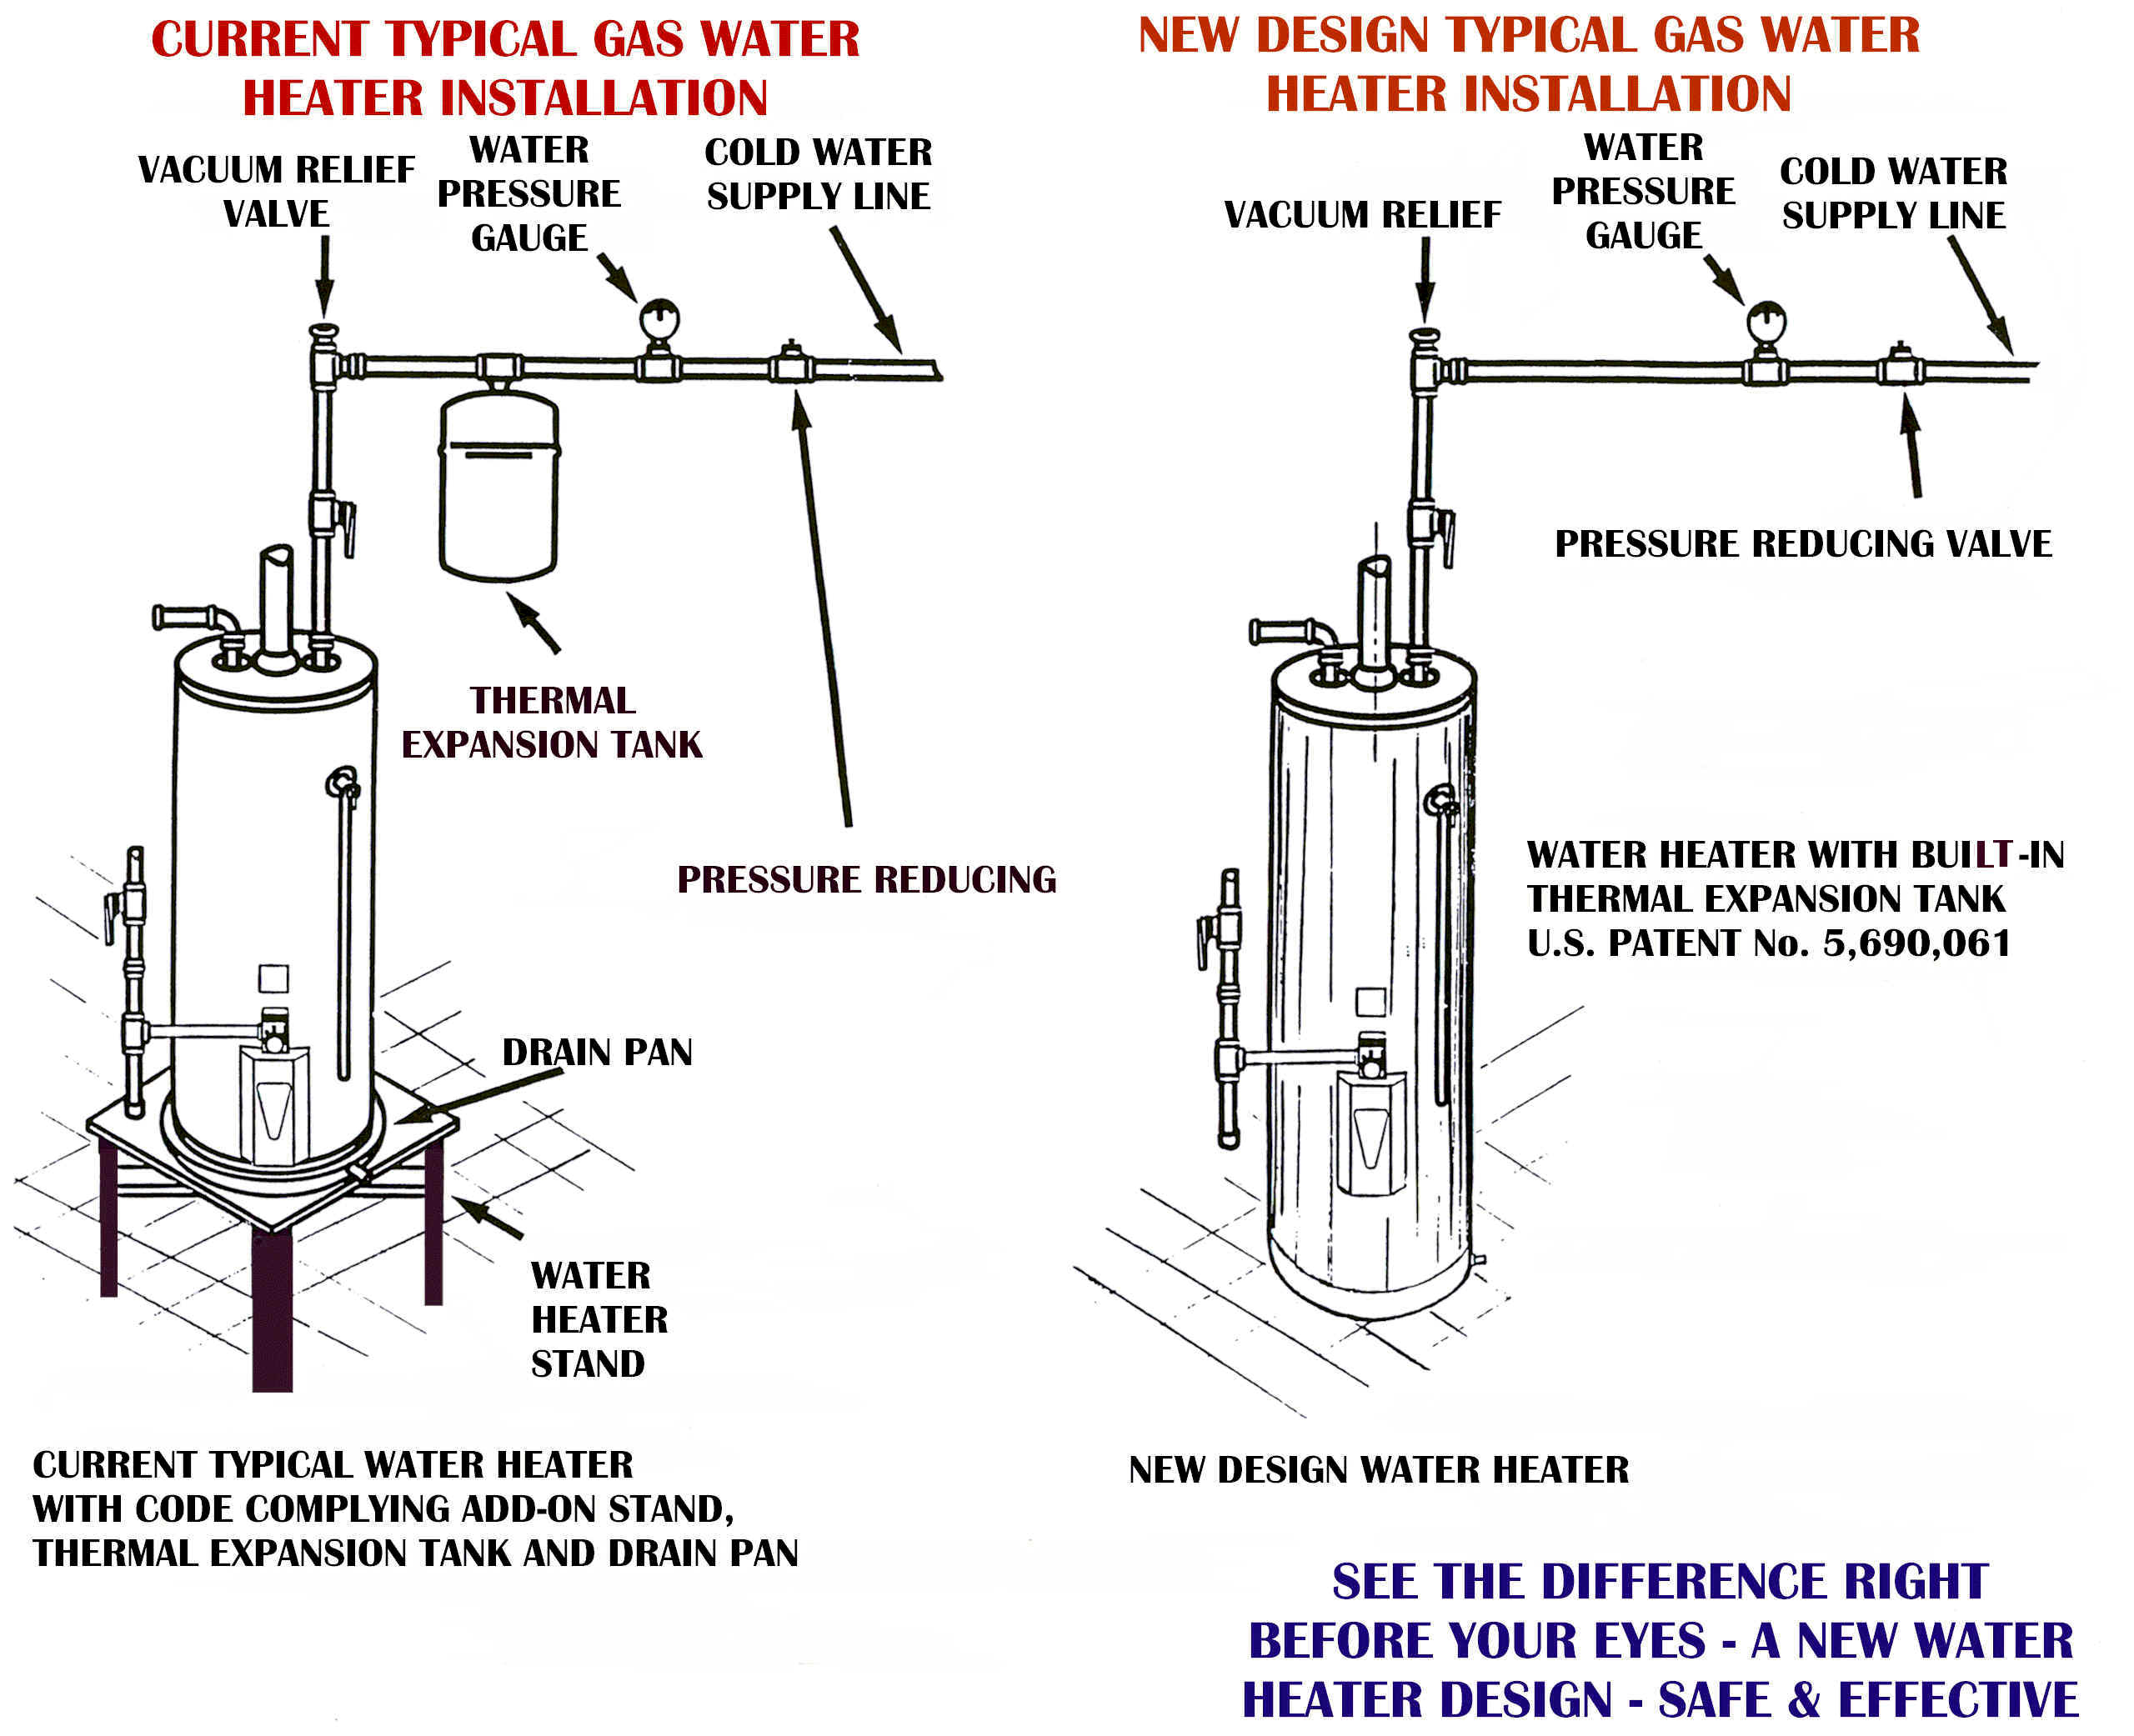 Hot water heater expansion tank plumbing diagram electrical work water heater expansion tank facias rh facias org watts expansion tank diagram recirc pump watts expansion ccuart Image collections